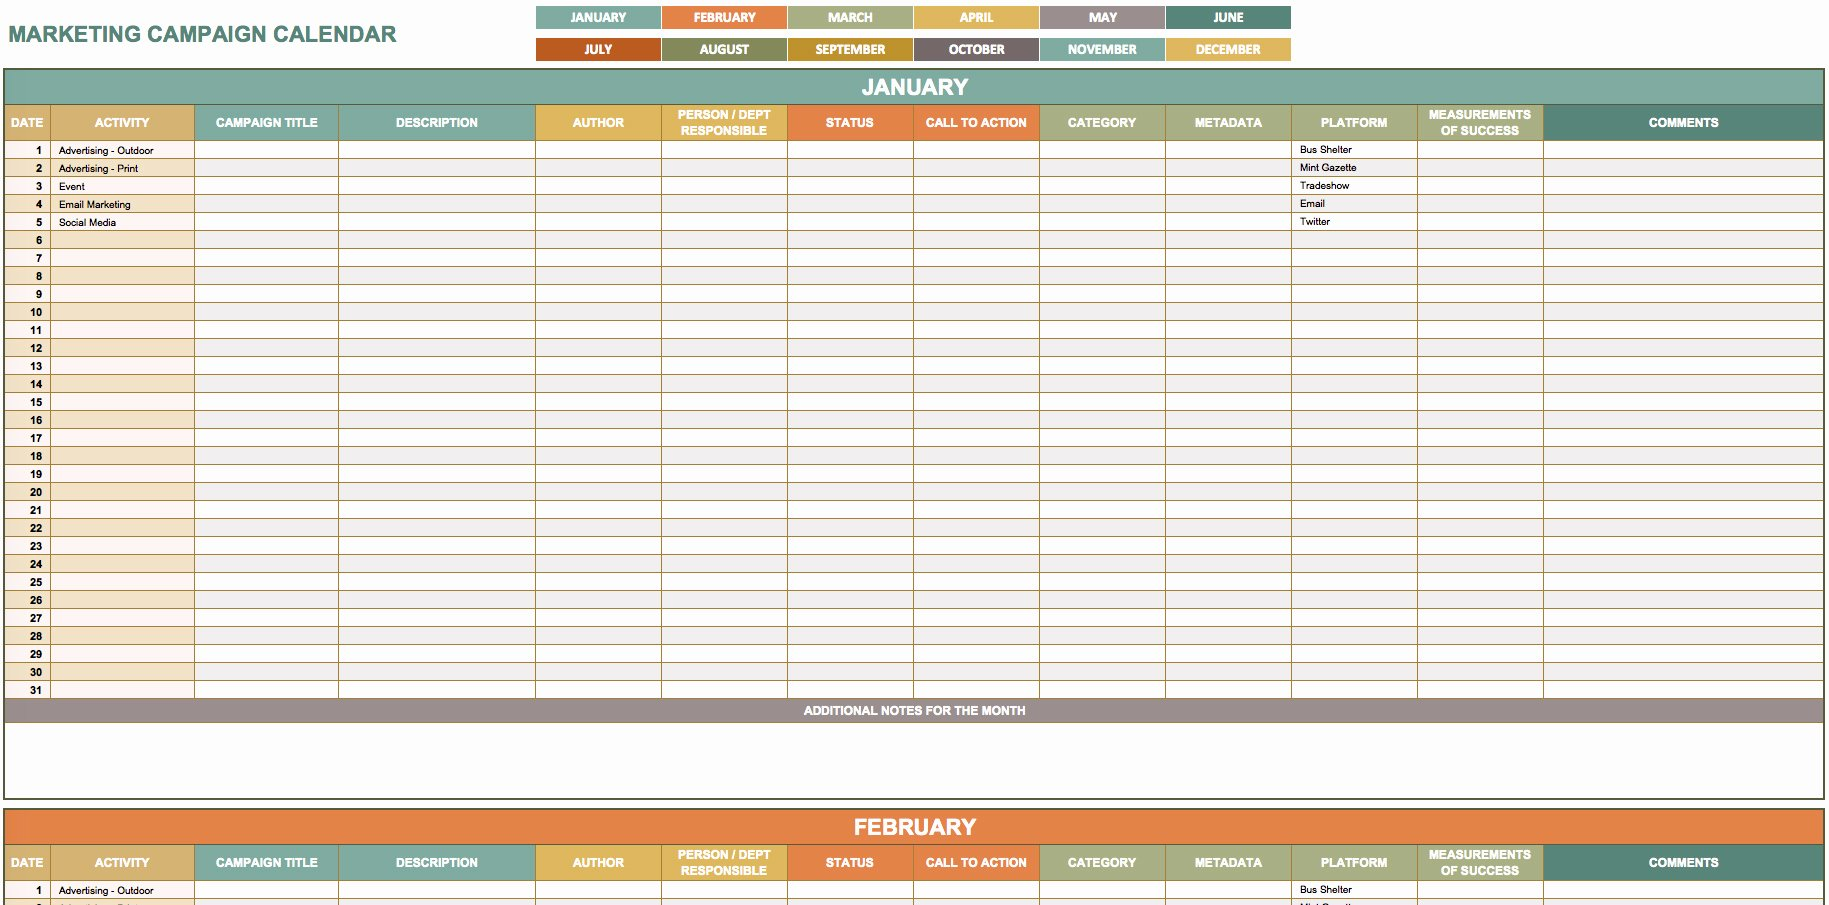 Annual Marketing Calendar Template New Marketing Calendar Template